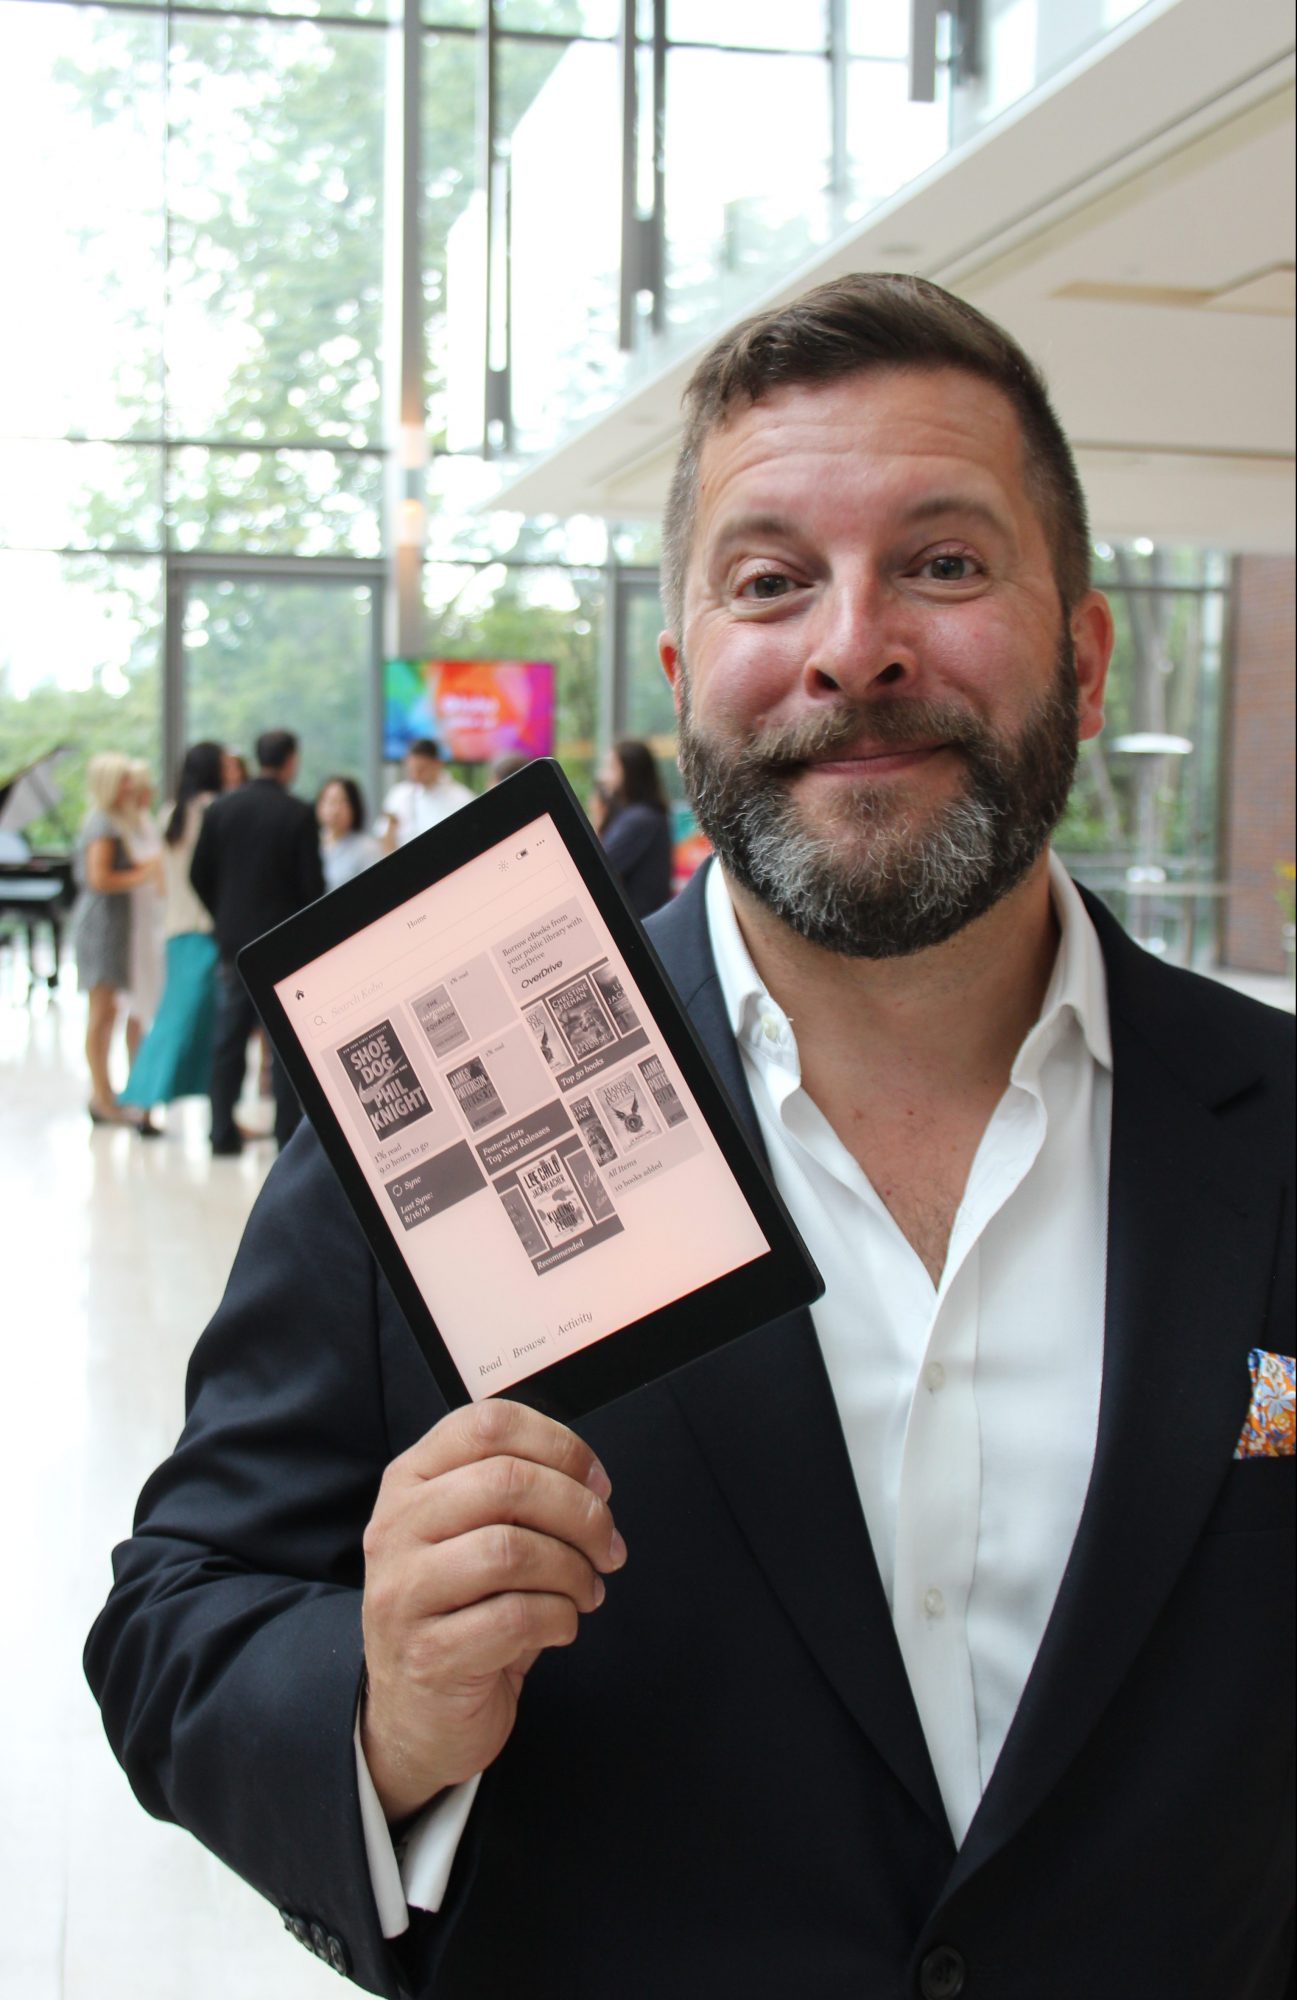 Kobo CEO Michael Tamblyn poses with the Kobo Aura One ereader